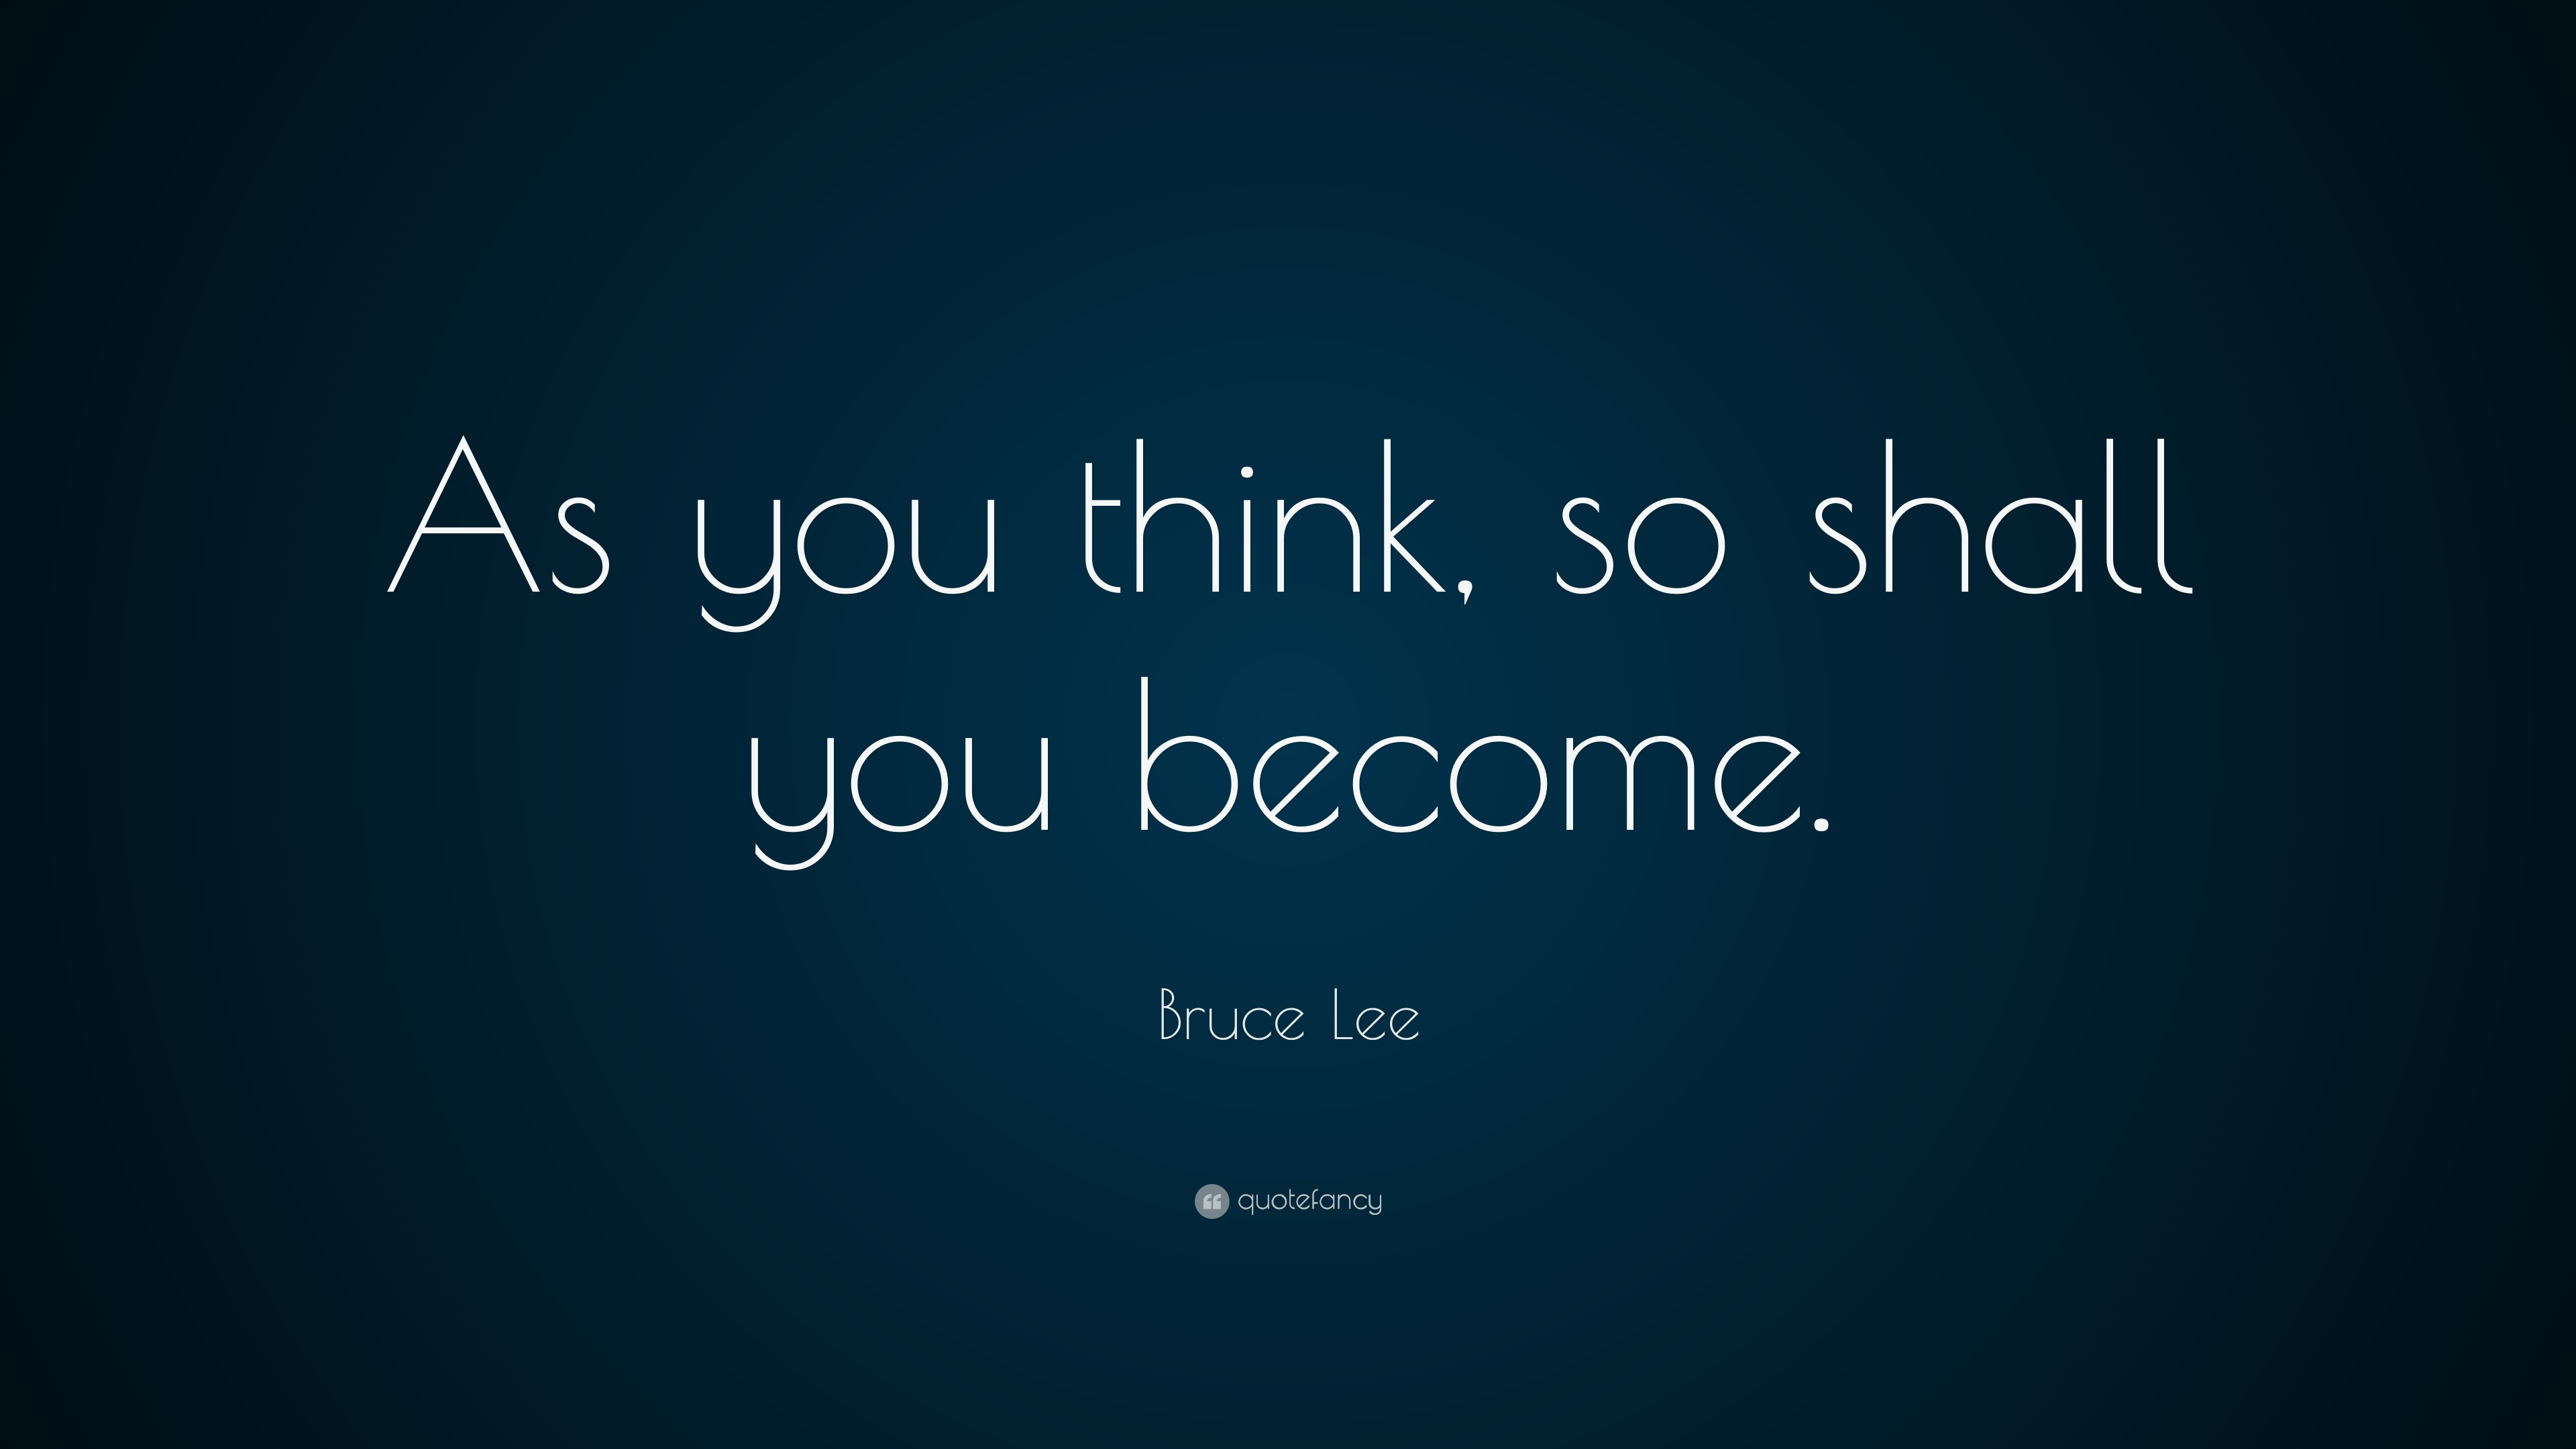 Napoleon Hill Quotes Wallpaper Bruce Lee Quote As You Think So Shall You Become 25